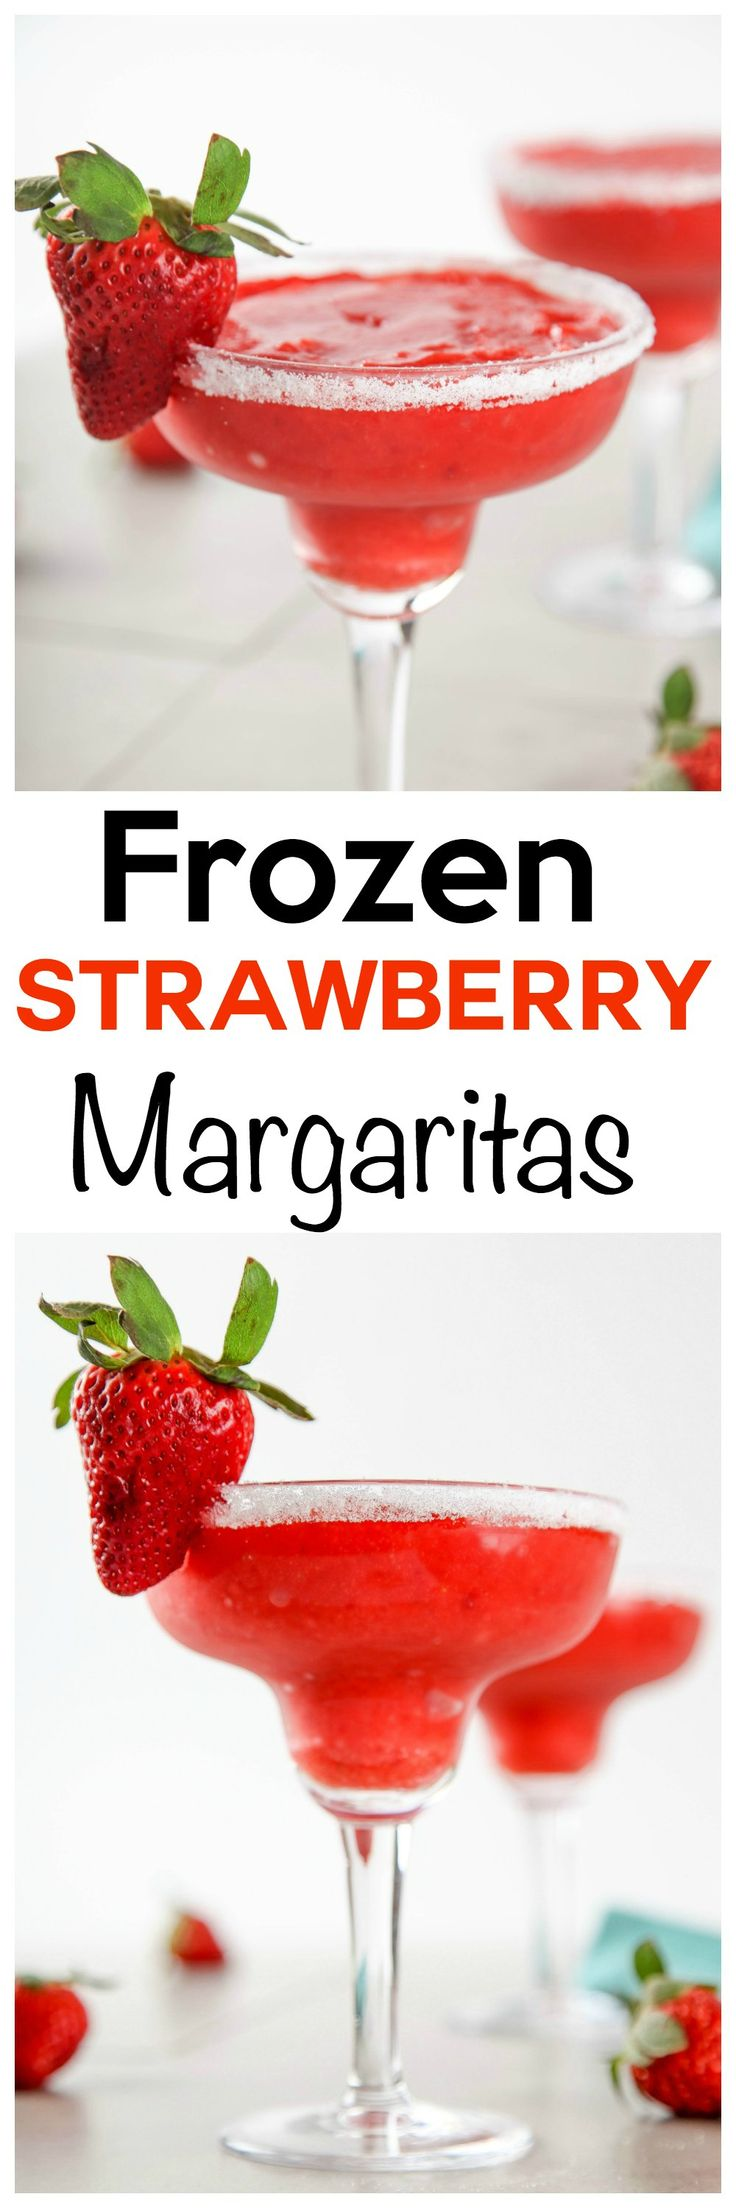 Frozen Strawberry Margaritas: Frosty and sweet strawberry margaritas that are amazingly refreshing. Only 5 ingredients and 5 minutes from blender to your lips!